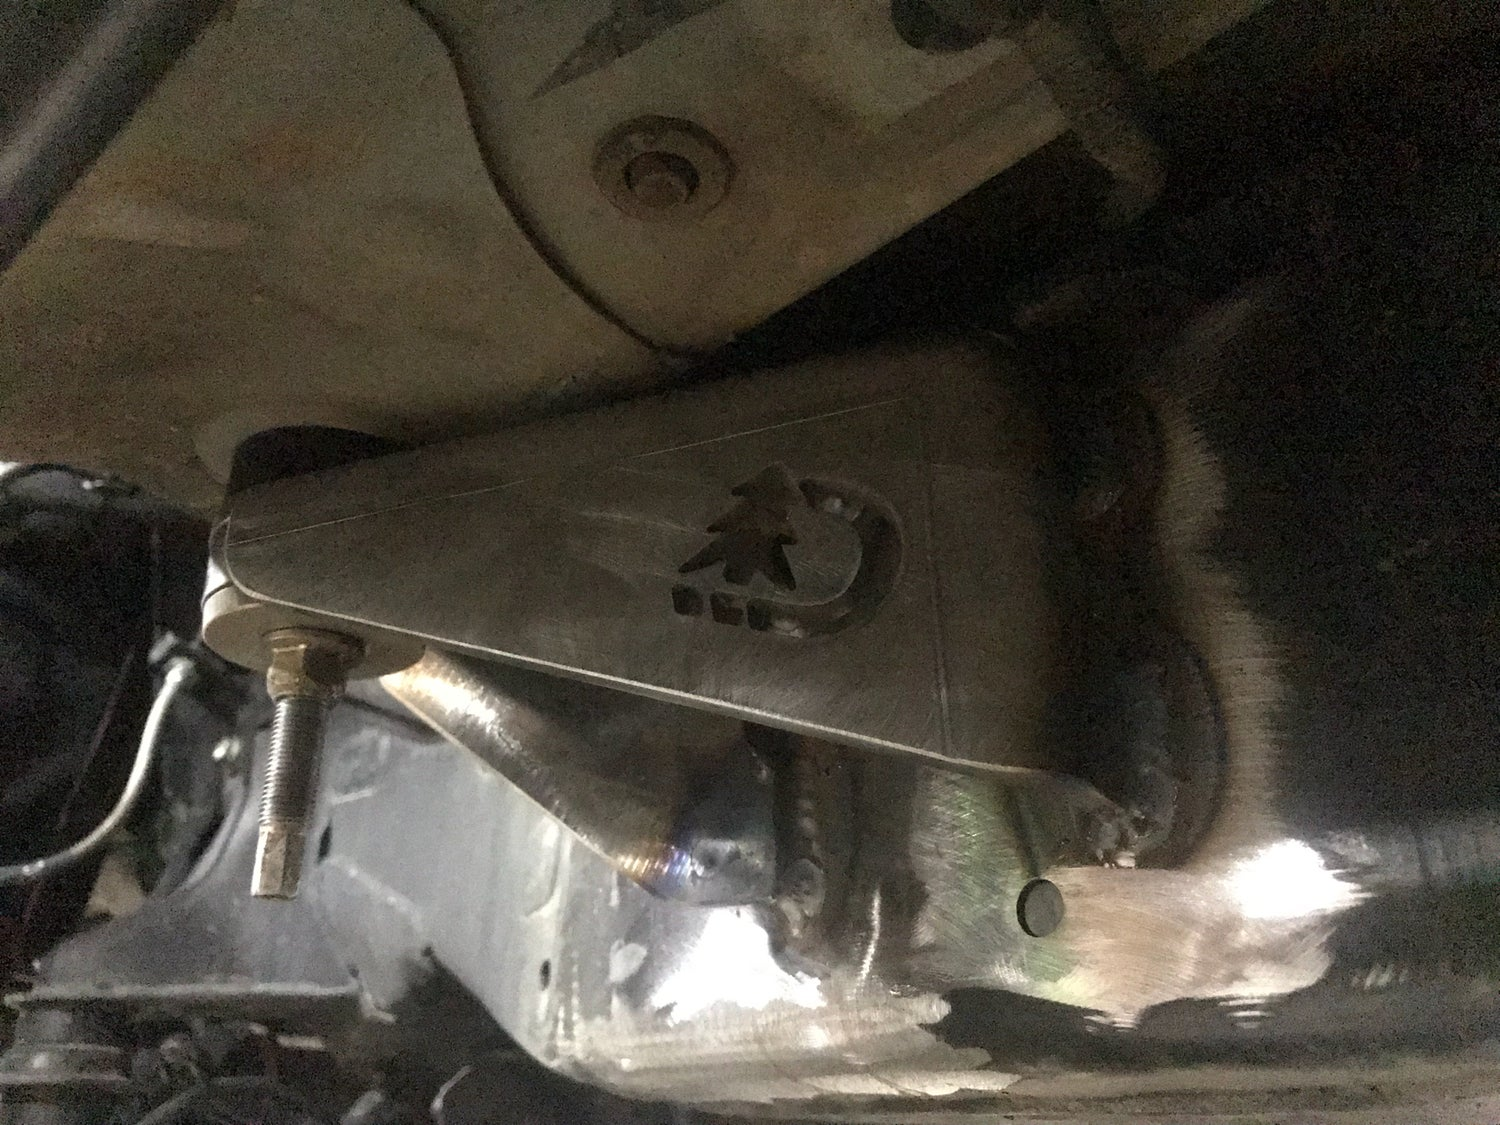 Image of 2005-2015 Toyota Tacoma front cab mount relocation kit.